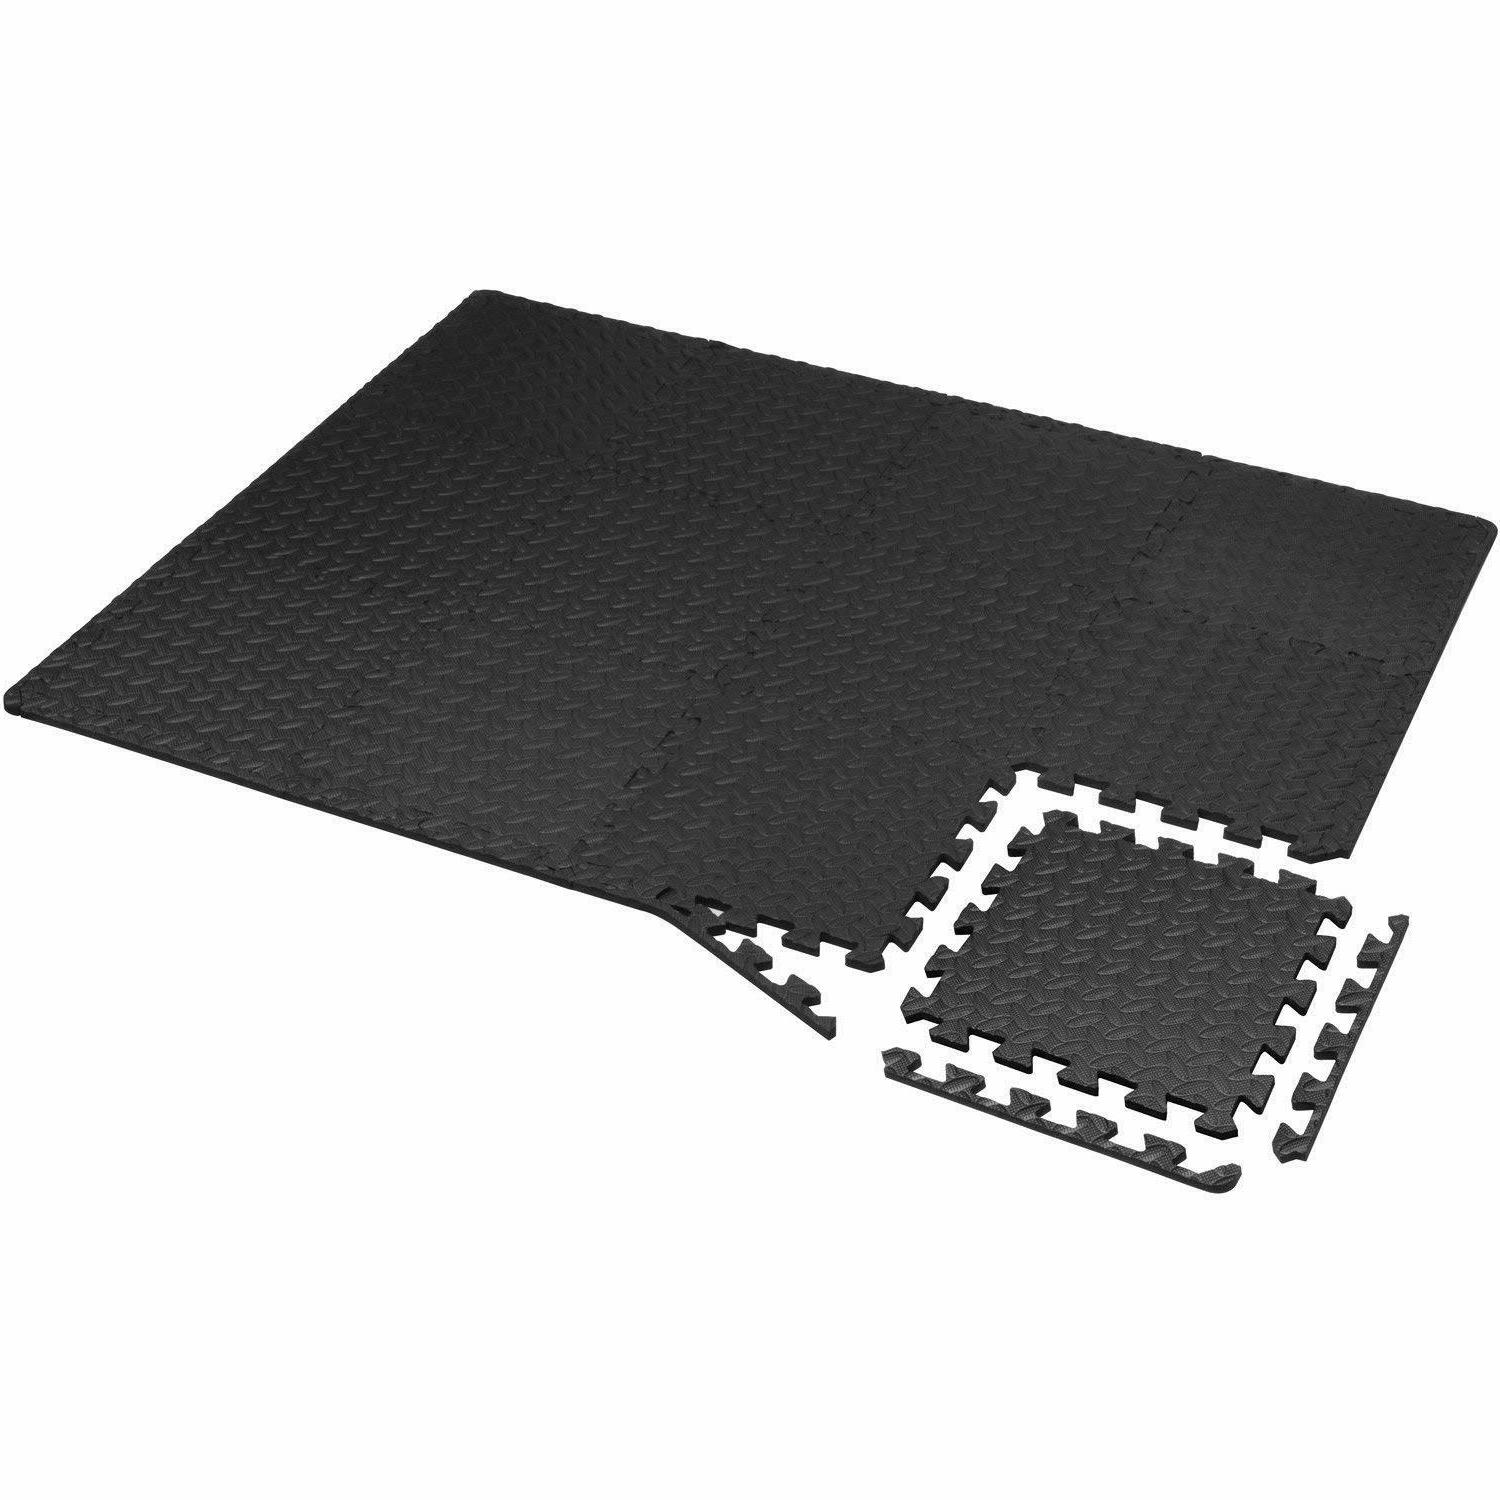 Exercise Floor Mat Puzzle Rug Gym SF Workout Equipment Weight Lifting